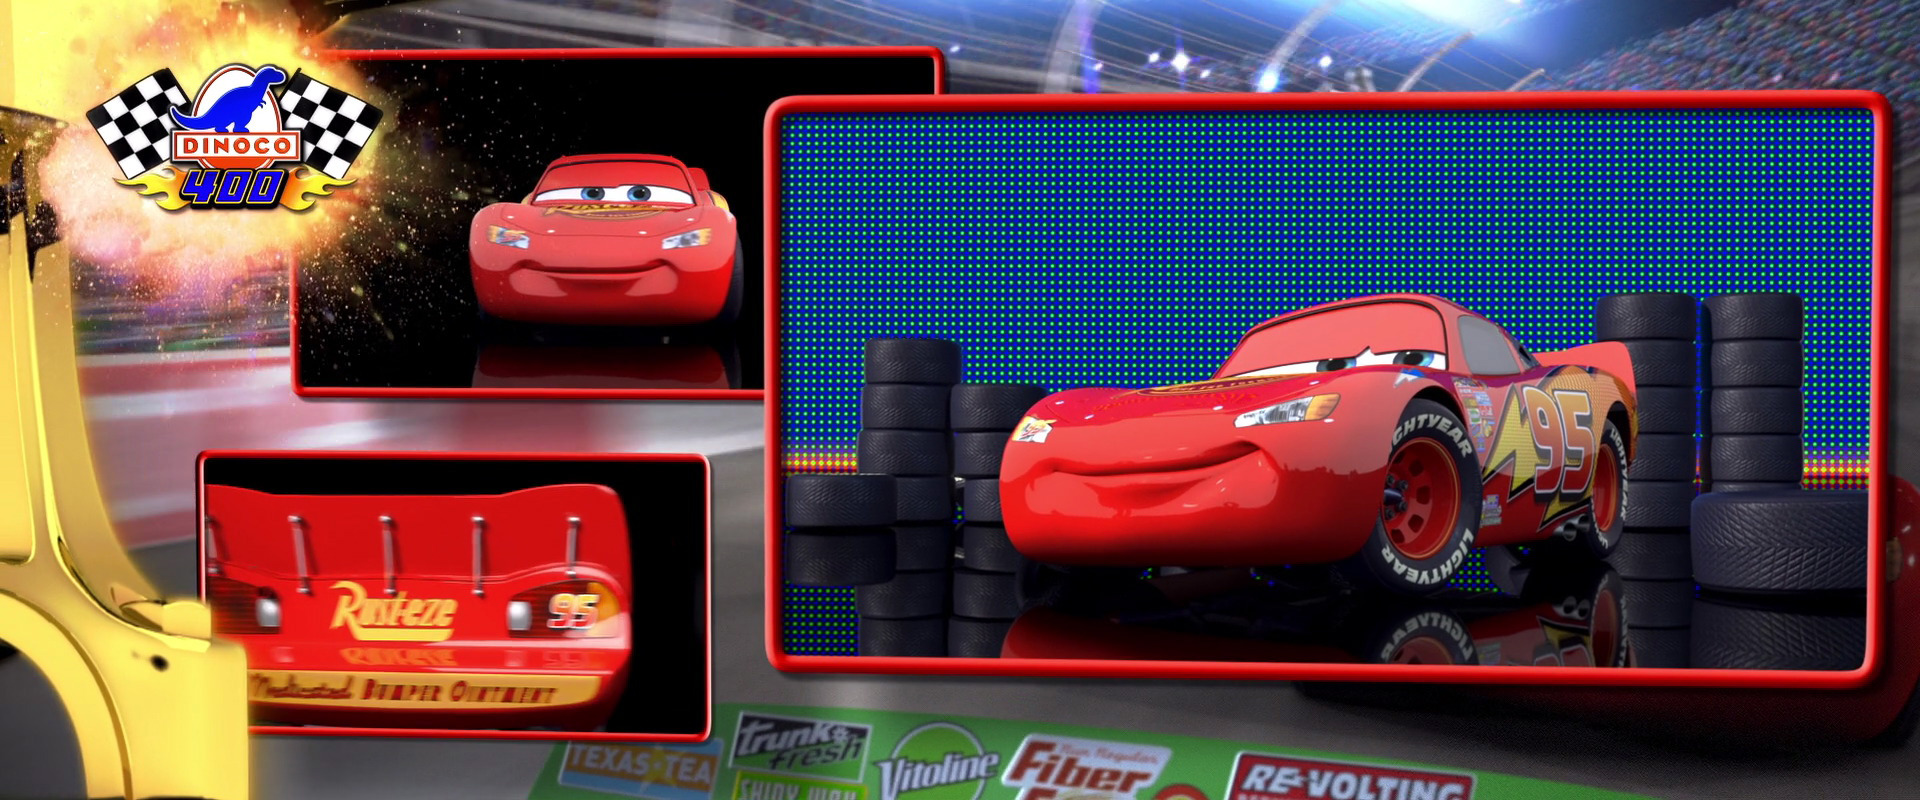 Disney CARS 1 - Lightning McQueen - Bed and Breakfast Amsterdam West